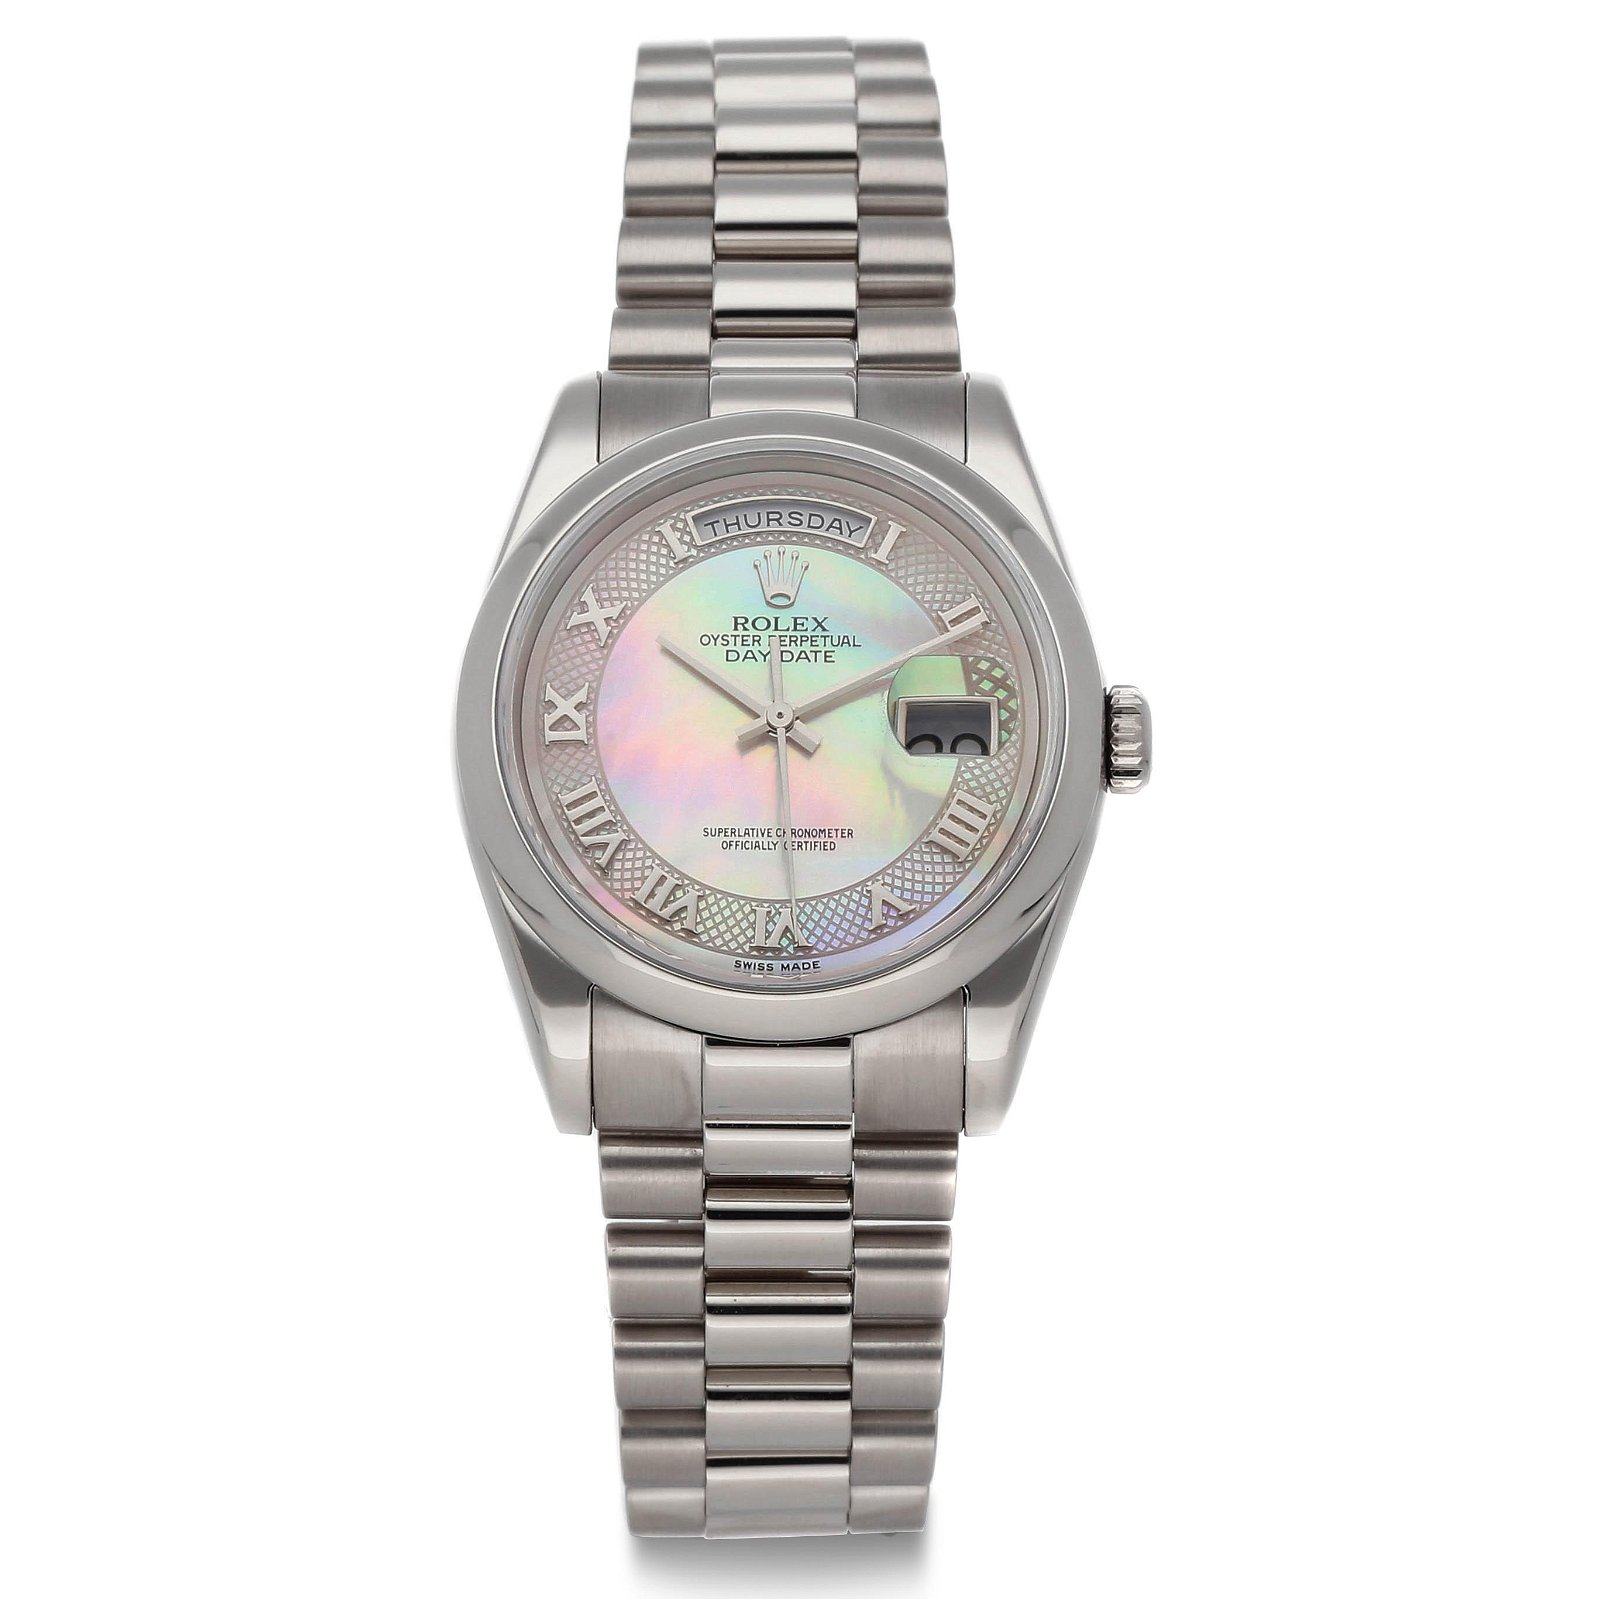 ROLEX, DAY-DATE, 18K WHITE GOLD, MOTHER-OF-PEARL DIAL,